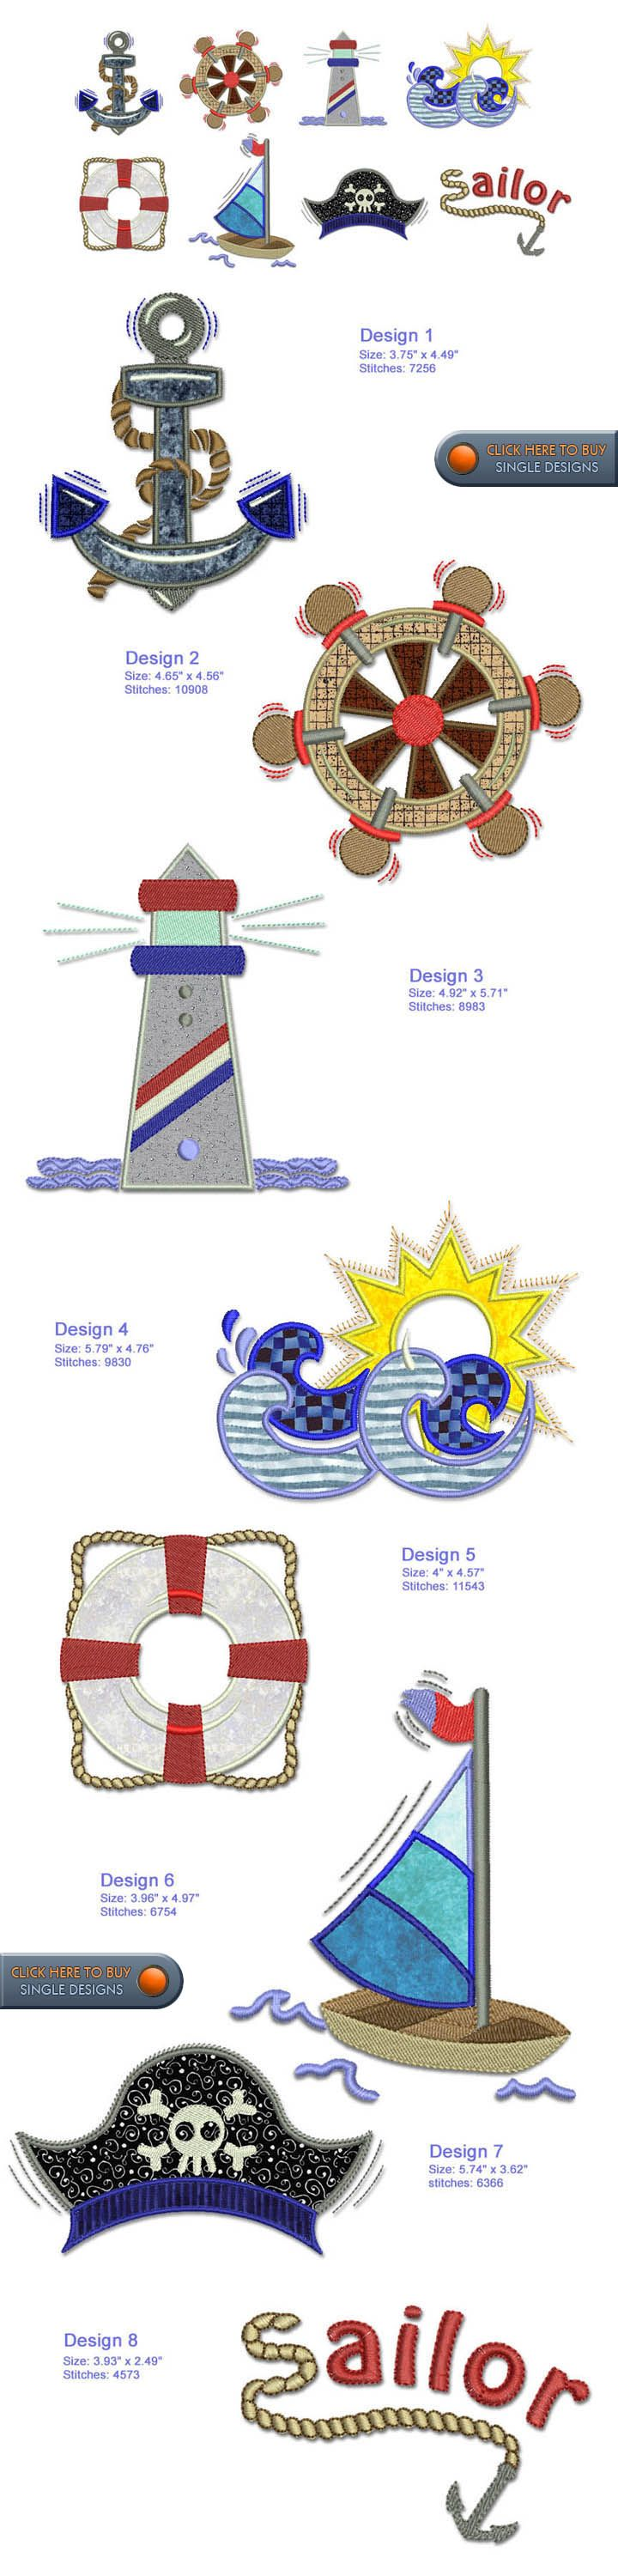 SAILOR MARINE Embroidery Designs Free Embroidery Design Patterns Applique - aw, look there's the dog's name!